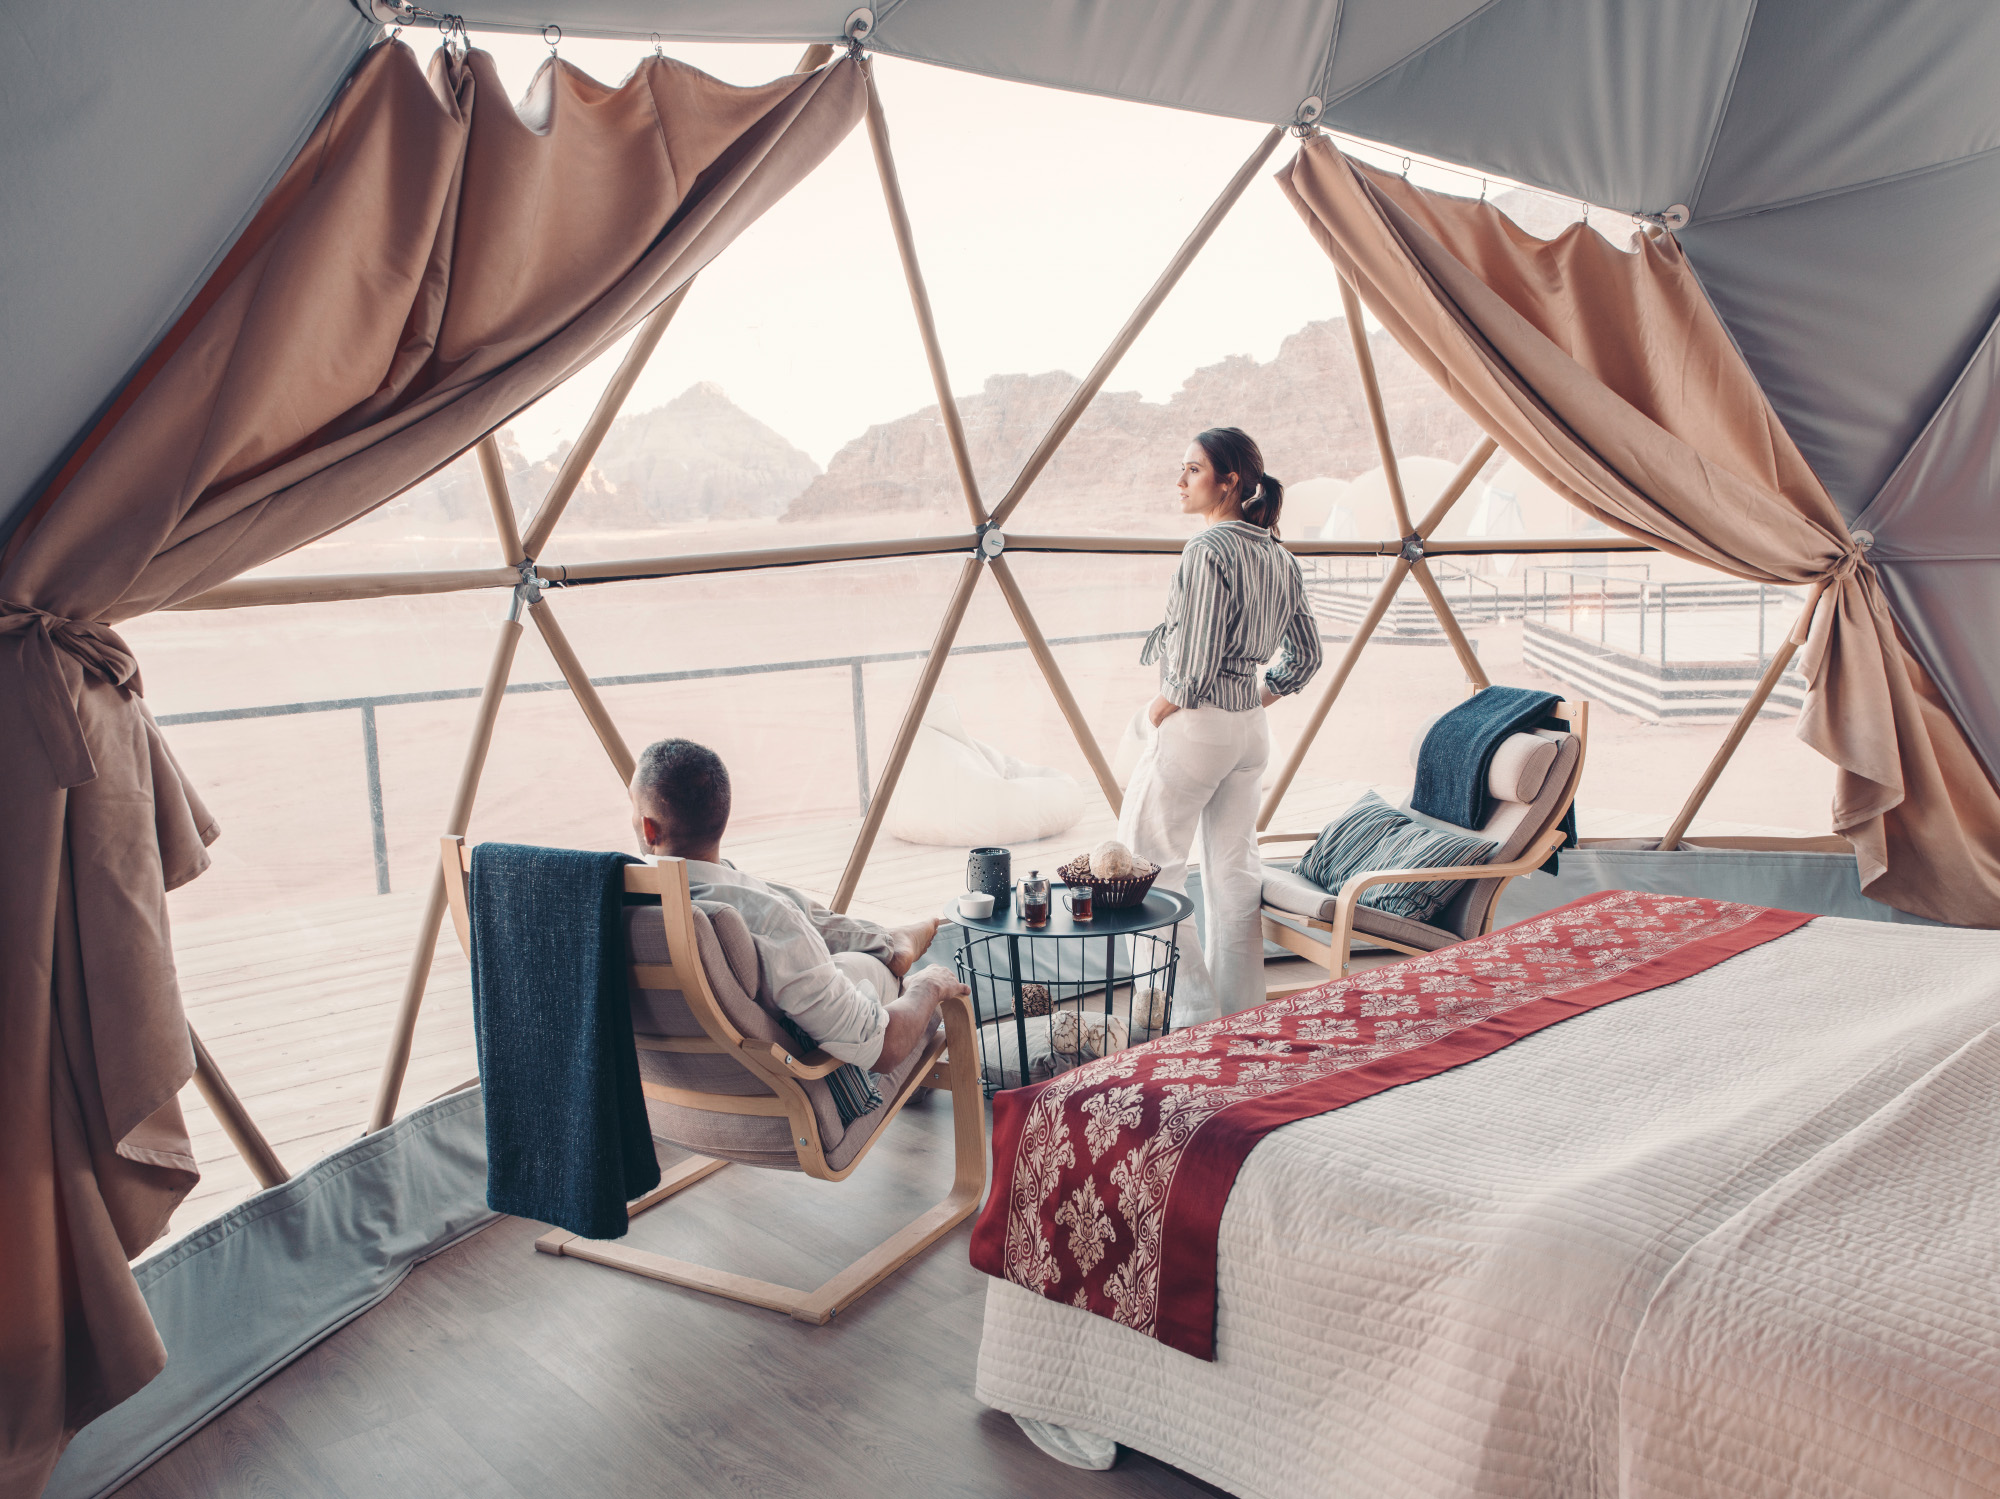 MISSION MARS: GLAMPING AT SUNCITY CAMP